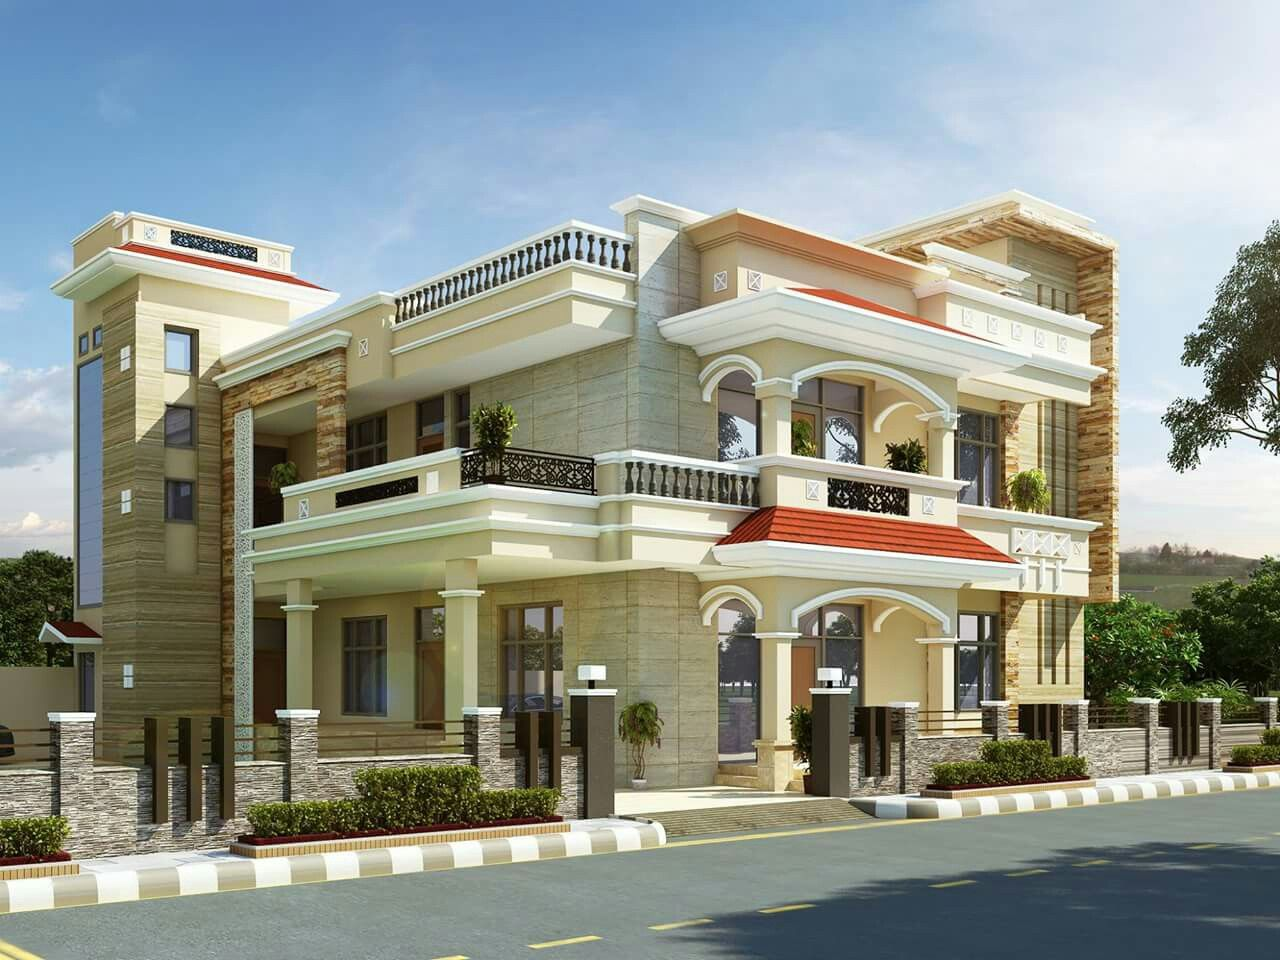 Pin by Dwarkadhish&Co. on Ideas for the house | House styles ... Front Elevation Modern House Designs Jamaica on front elevation indian house designs, building front elevation designs, home elevation designs, small house front elevation designs, front porch with wood railing designs, american modern home interior designs, villas kerala home designs, super luxury kerala style home designs, modern 3 bedroom house designs, modern house plans and designs, duplex house elevation designs, modern apartment building elevation design, modern hotel elevation designs, modern one story house designs, beautiful front house designs, indian modern house designs, modern european living room designs, modern houses front view, modern villa elevation, small modern house plans home designs,